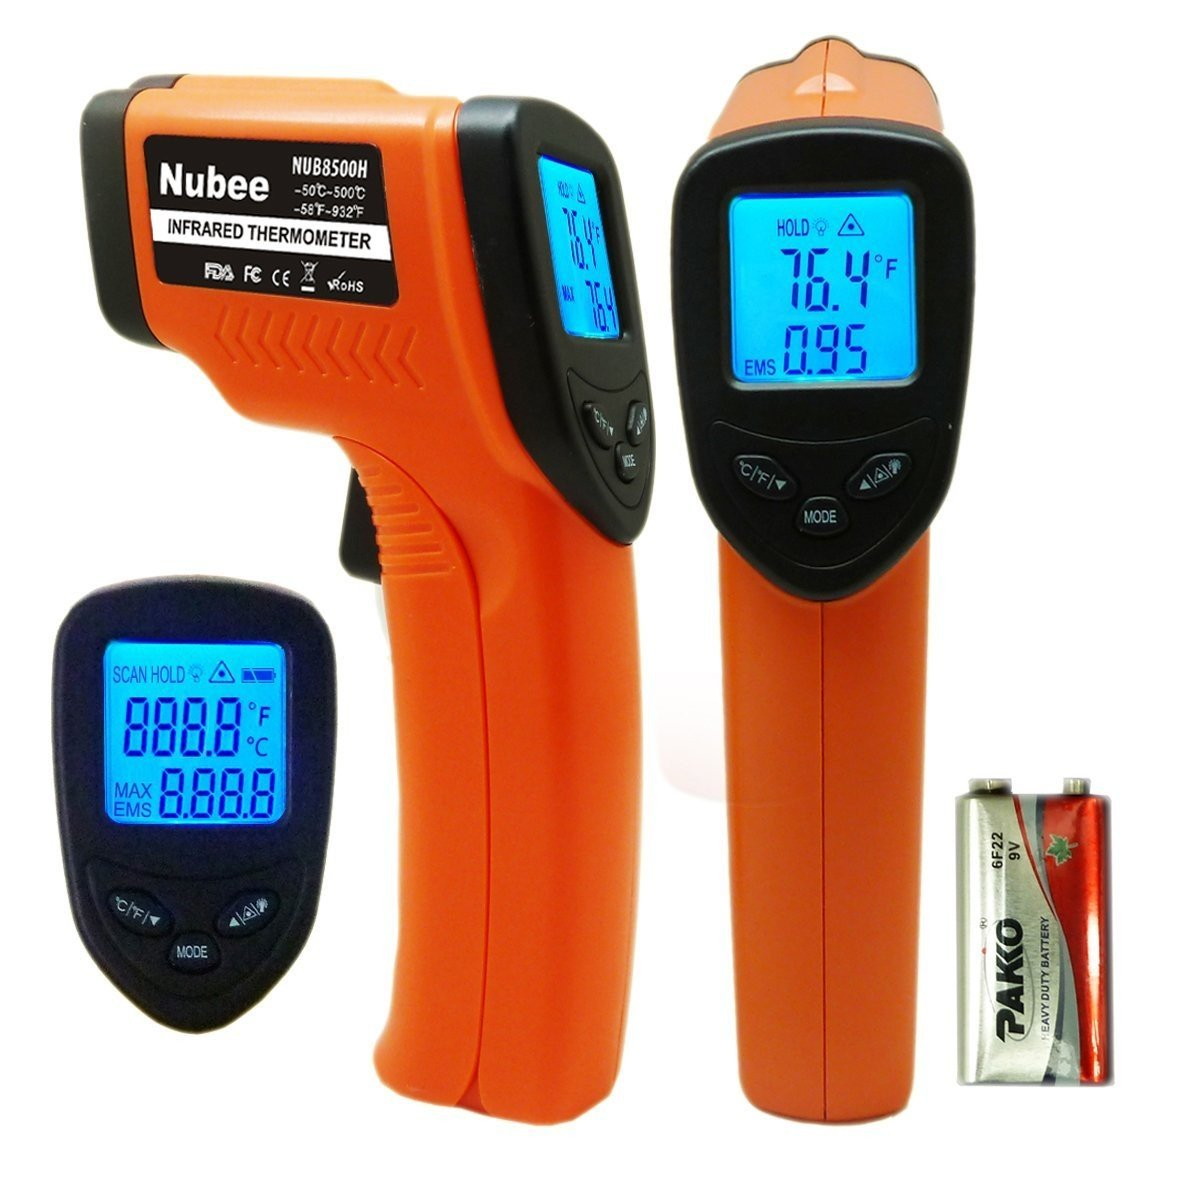 Nubee Temperature Gun Non contact Infrared Thermometer MAX Display EMS Adjustable